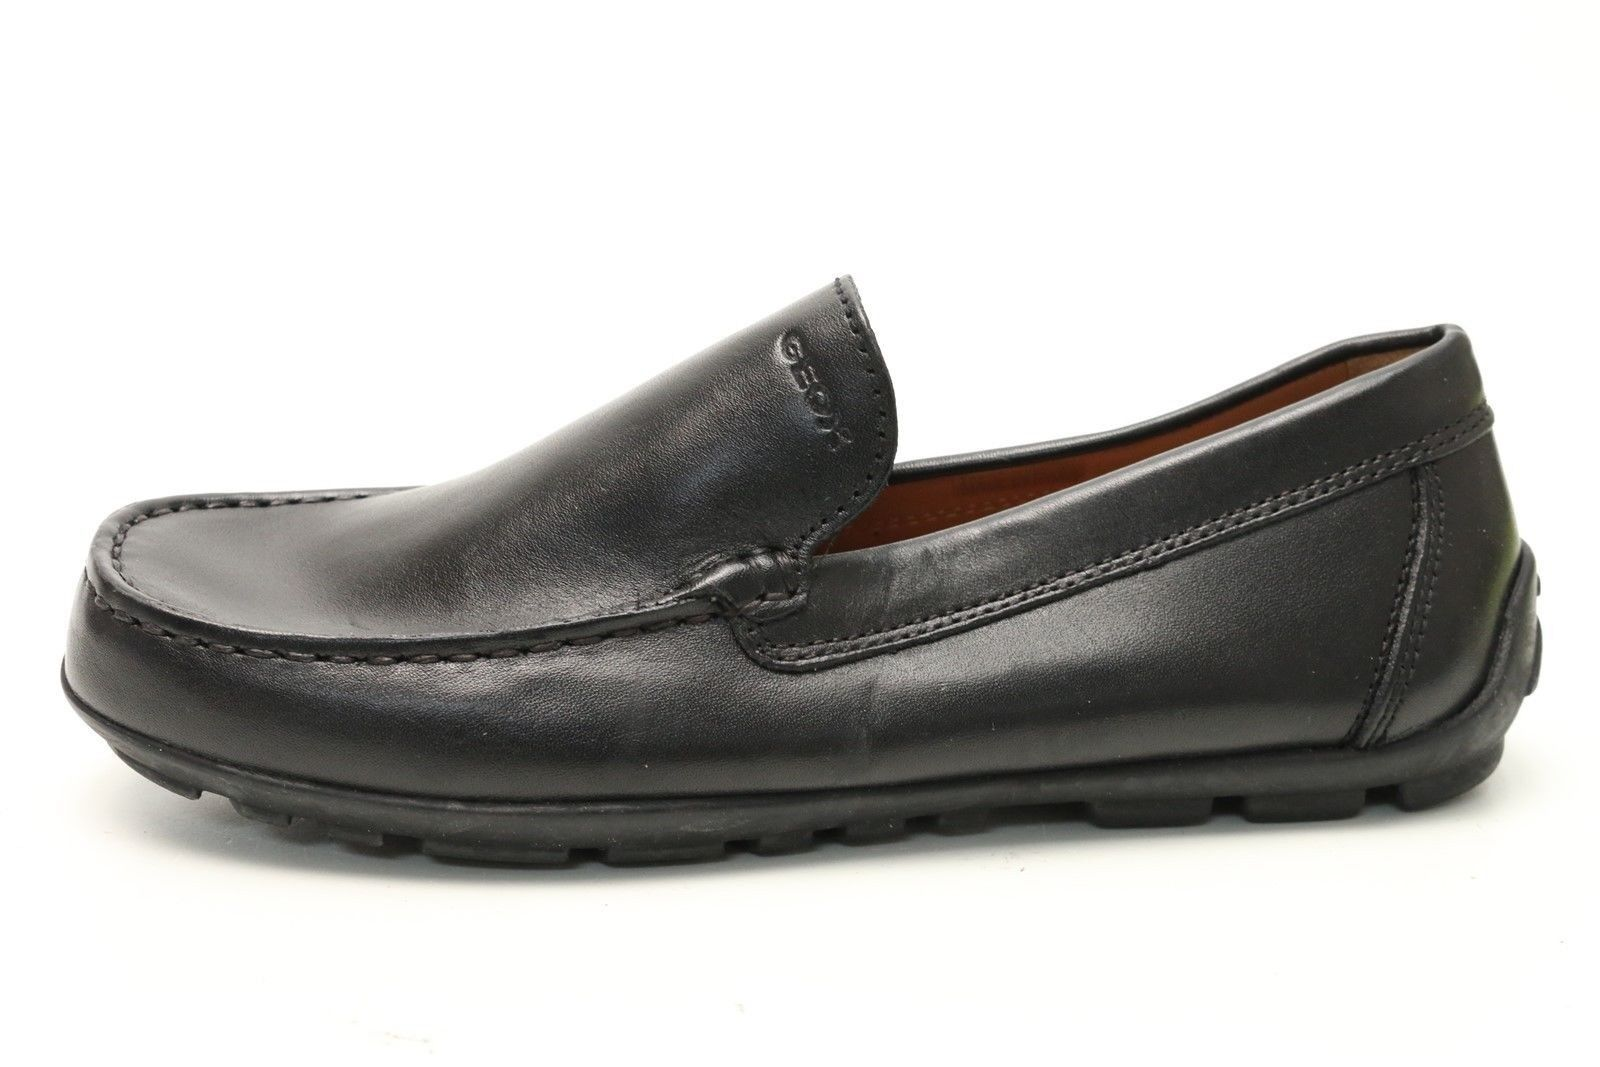 femmes GEOX REPIRA noir leather loafers chaussures sz. 35 NEW